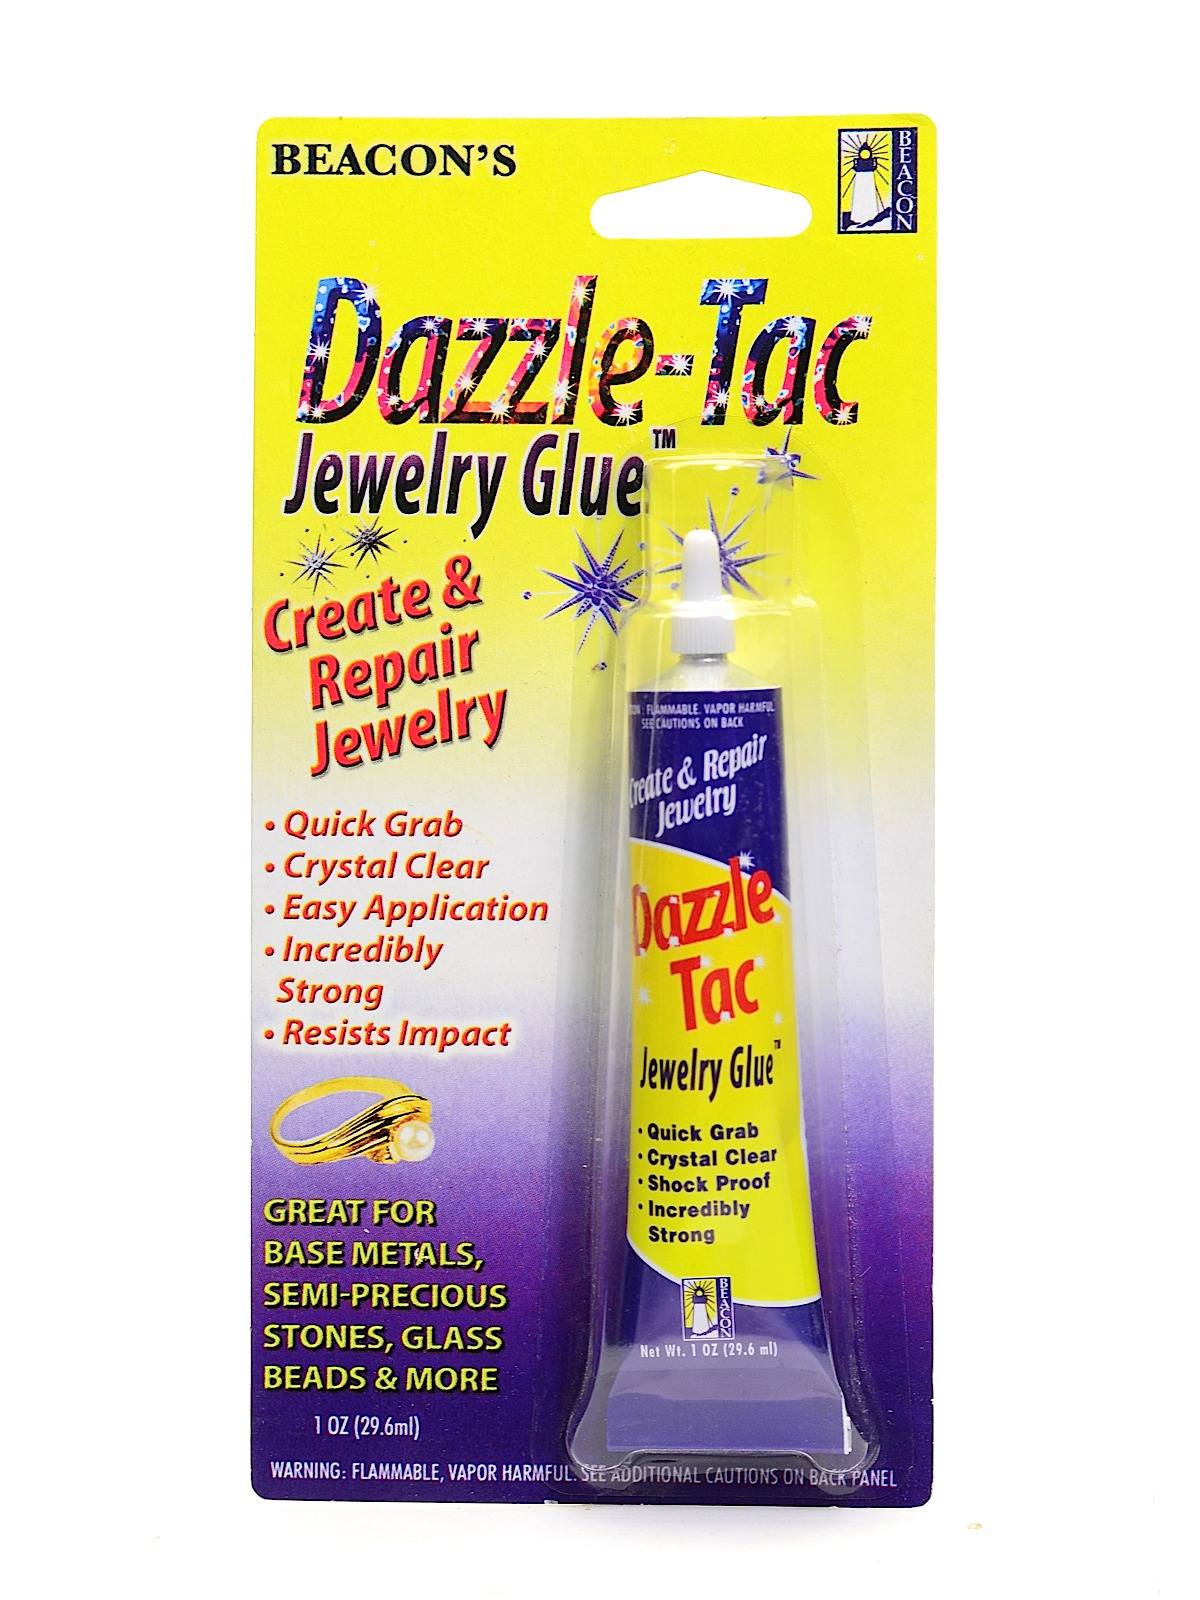 beacon dazzle tac jewelry glue